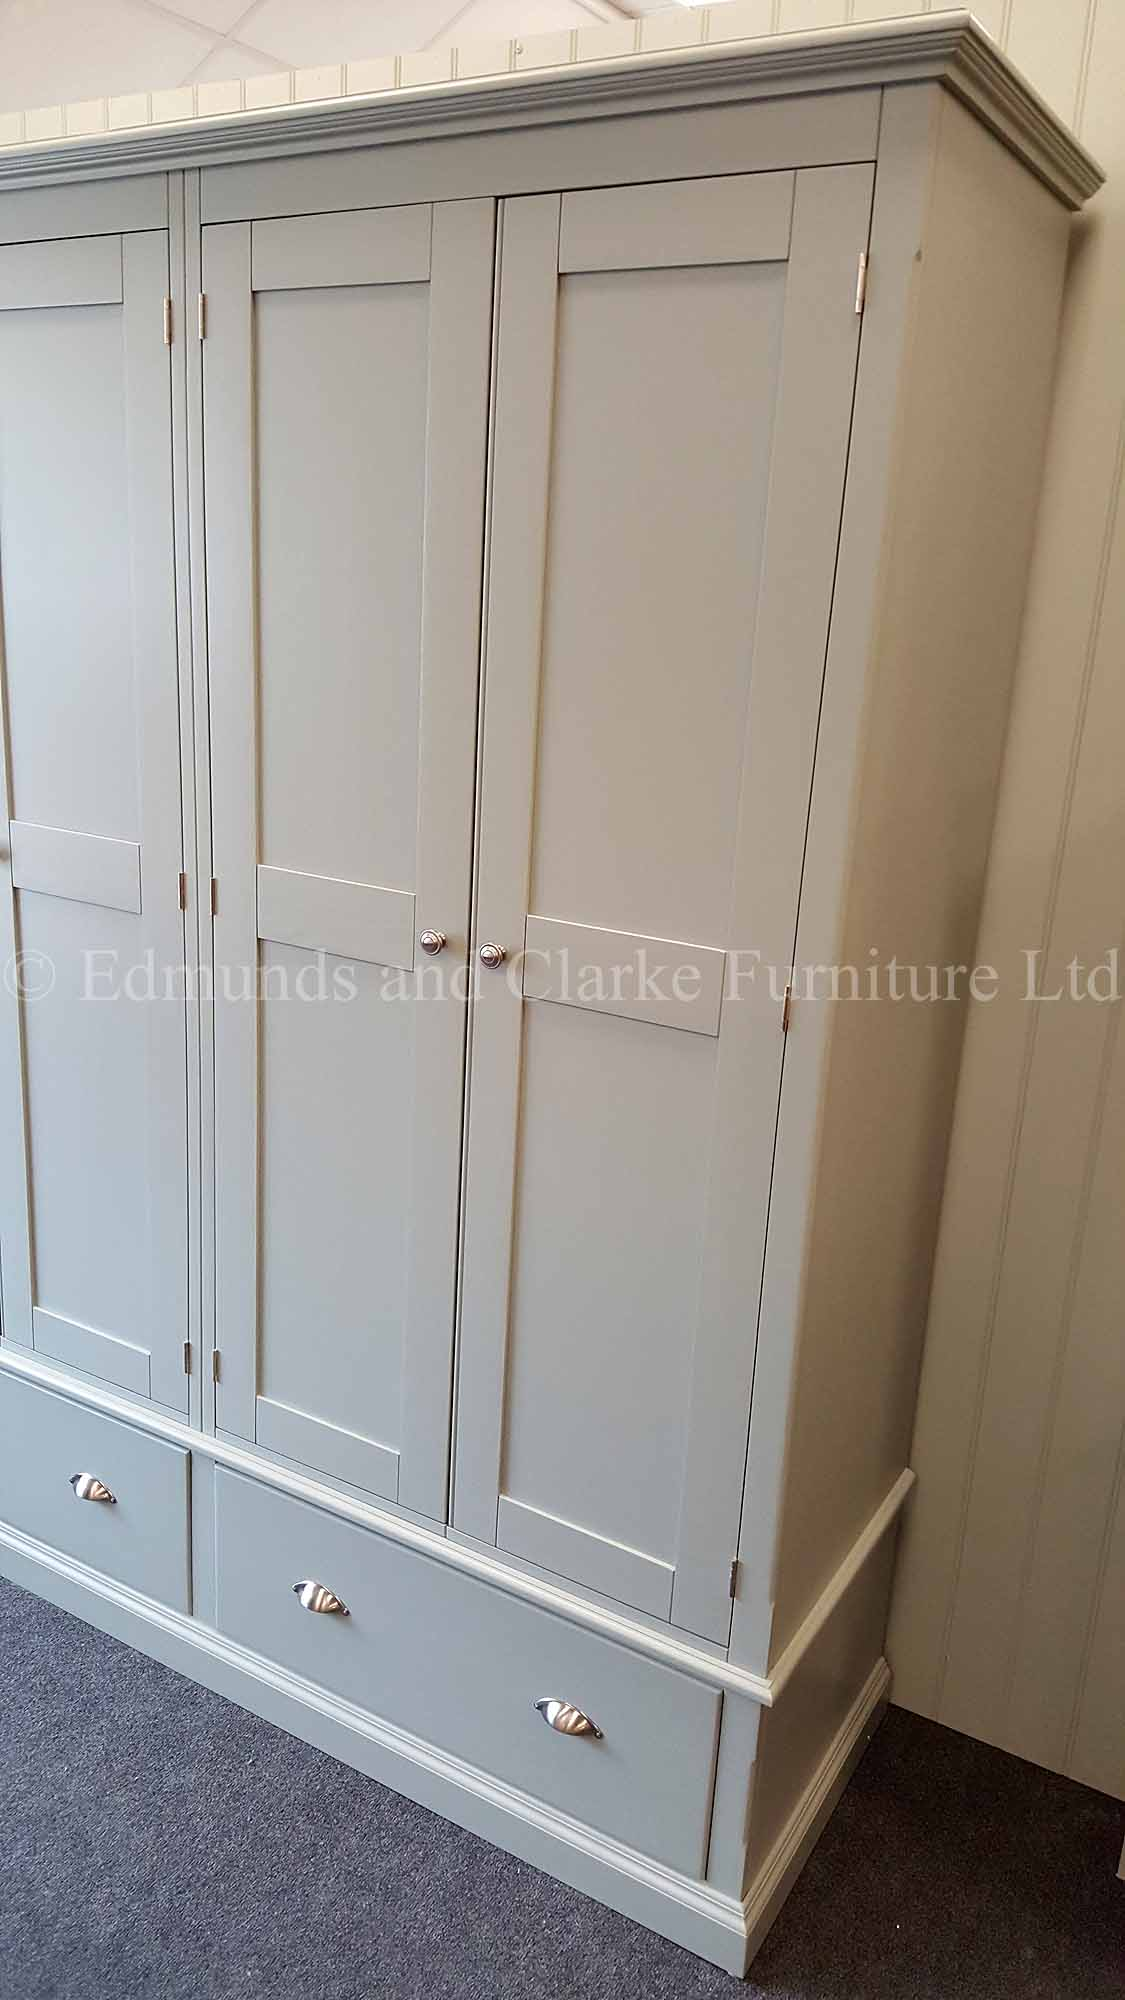 Large made to measure painted wardrobe 6 doors and 3 drawers